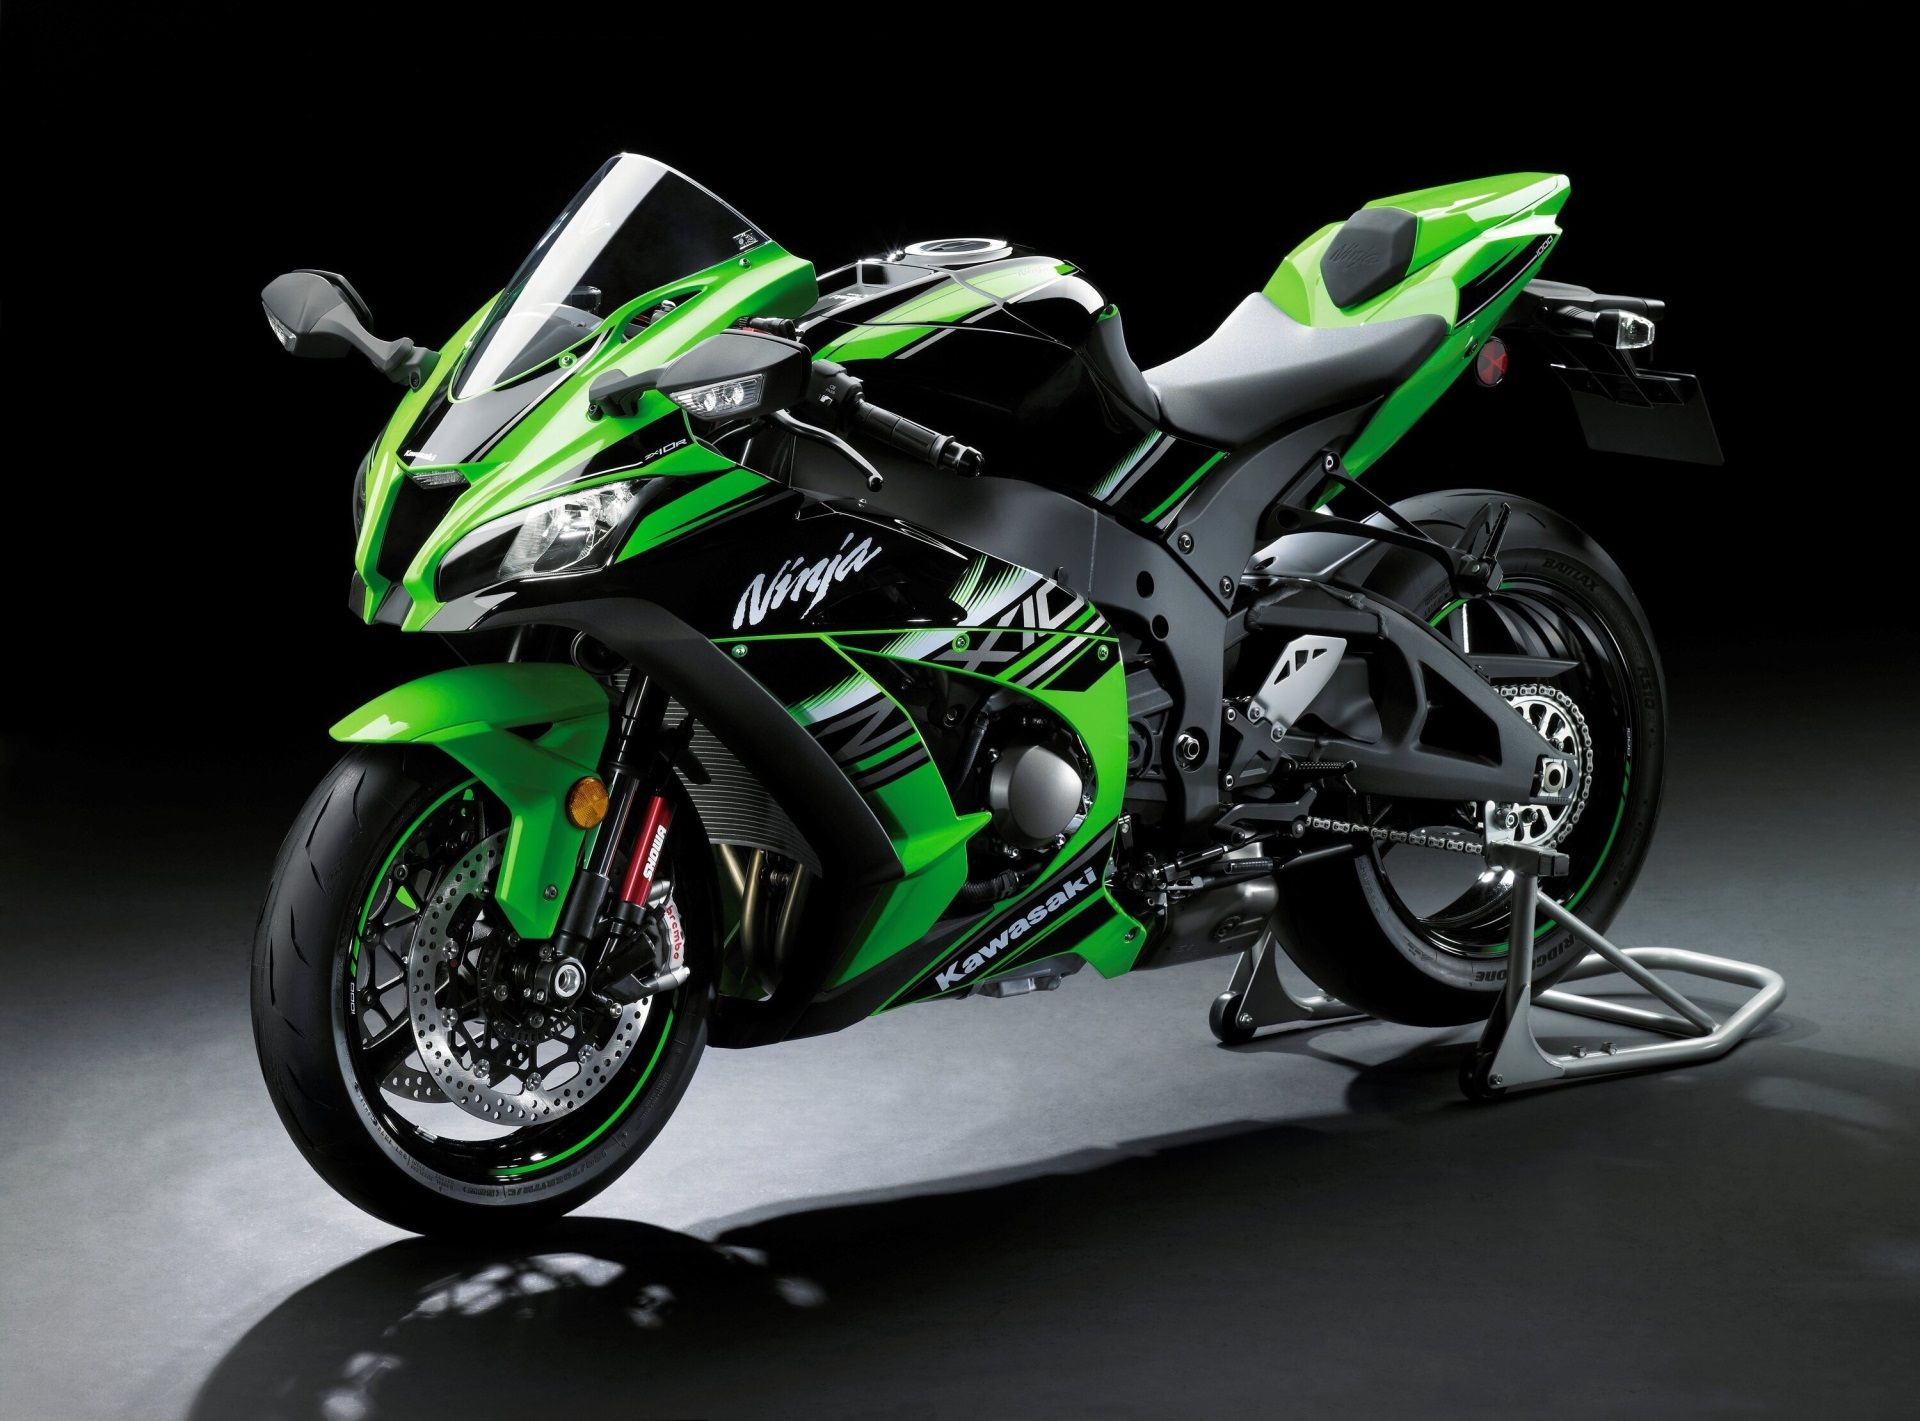 1920x1421 Kawasaki Ninja H2r Hd Screen Wallpaper